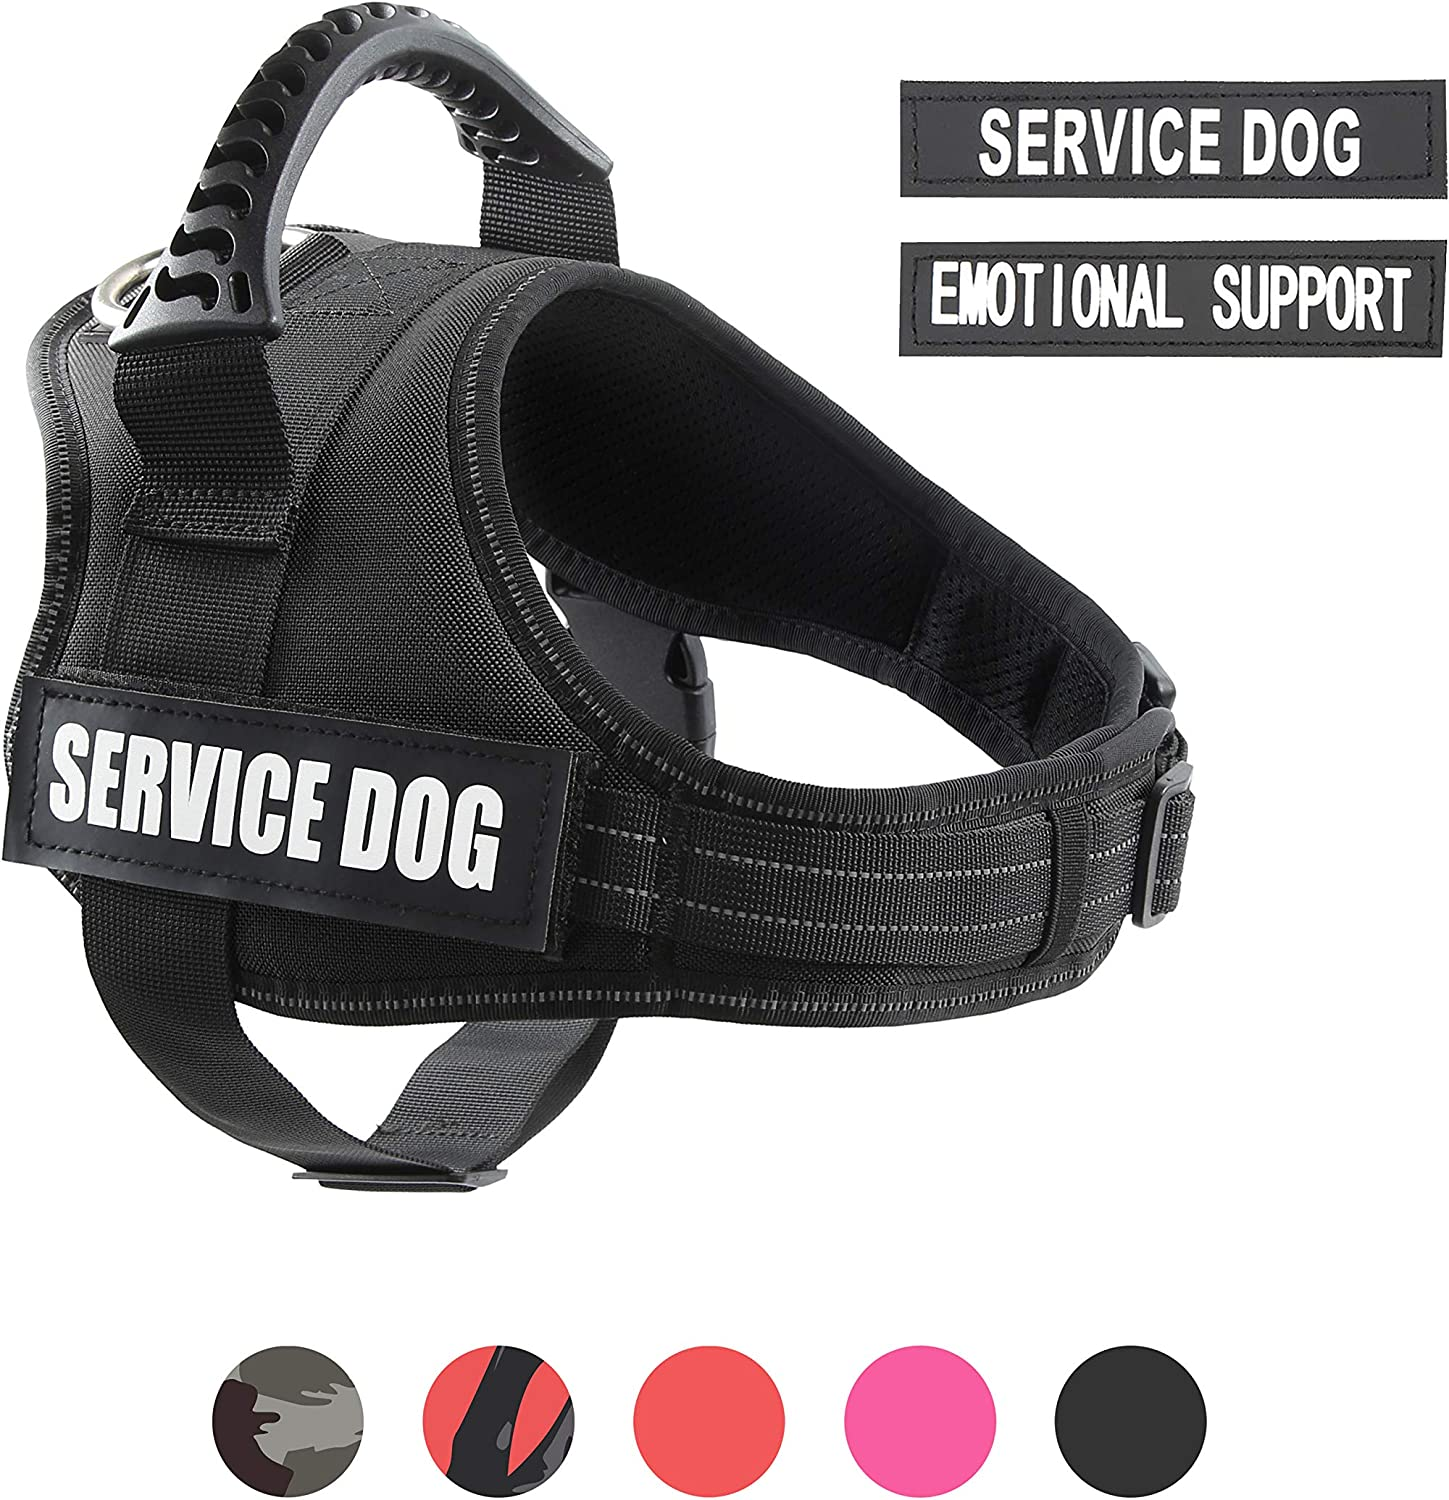 Red//Black//Pink//Camo pawshoppie Real Reflective Service Dog Vest Harness Including 2 Free Removable Service Dog and 2 Emotional Support Patches Comfortable Padded Dog Training Vest with Handle